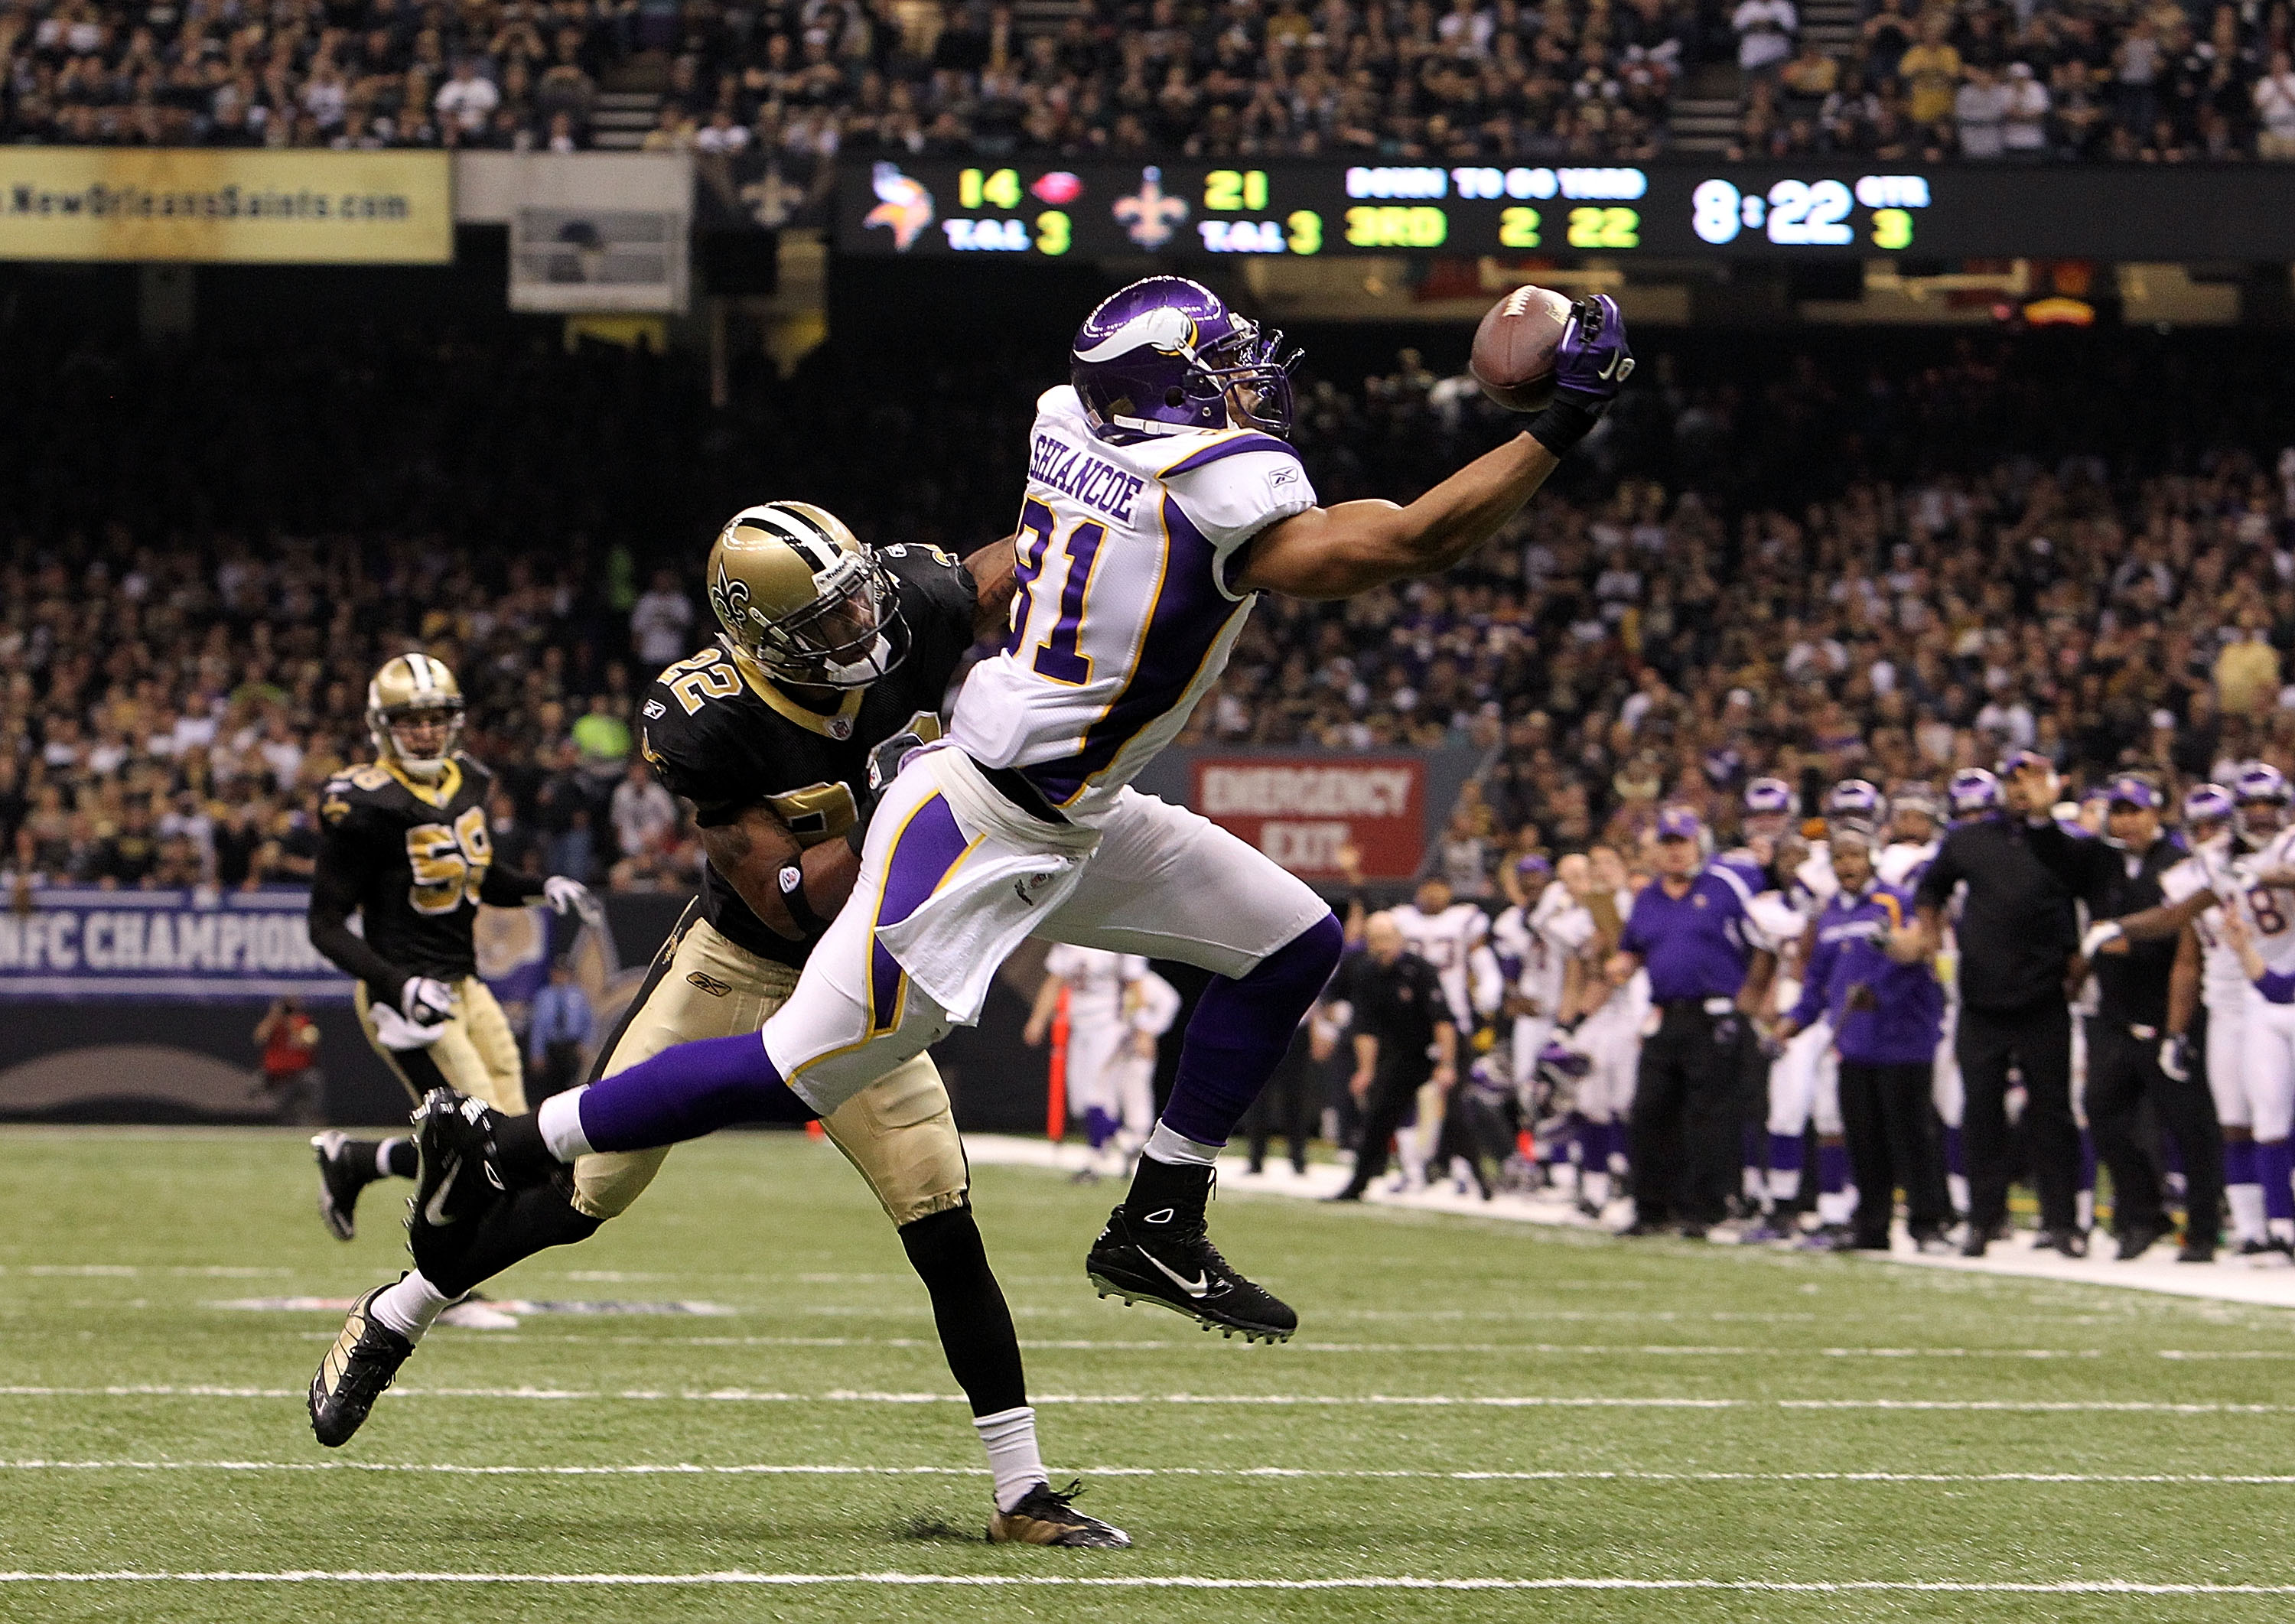 NEW ORLEANS - JANUARY 24:  Visanthe Shiancoe #81 of the Minnesota Vikings makes a one handed catch against Tracy Porter #22 of the New Orleans Saints during the NFC Championship Game at the Louisiana Superdome on January 24, 2010 in New Orleans, Louisiana